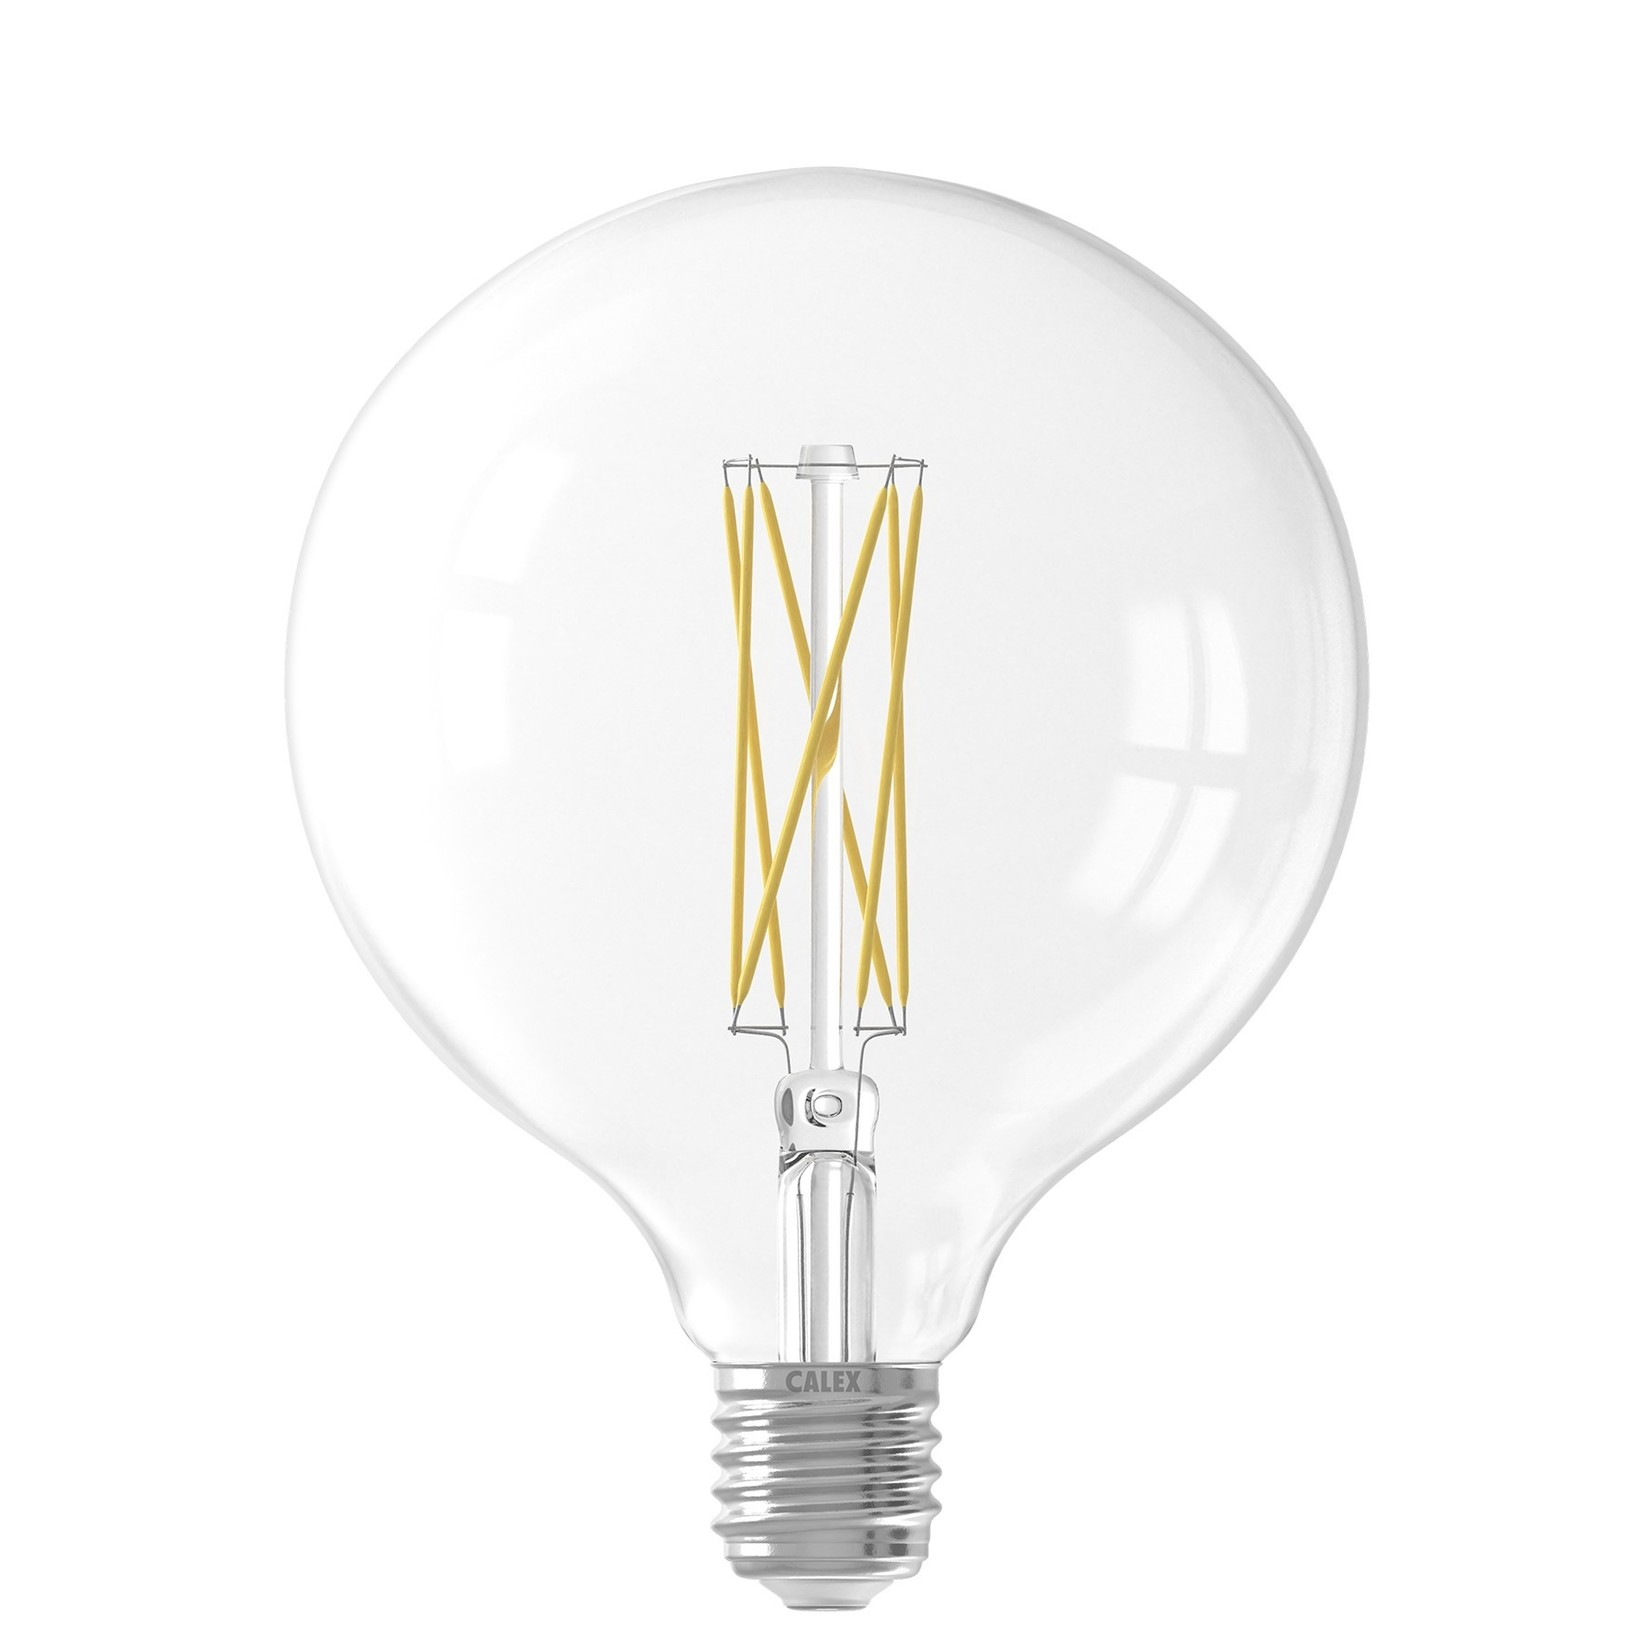 LED 125mm 4W 230V E27 2300K Clear